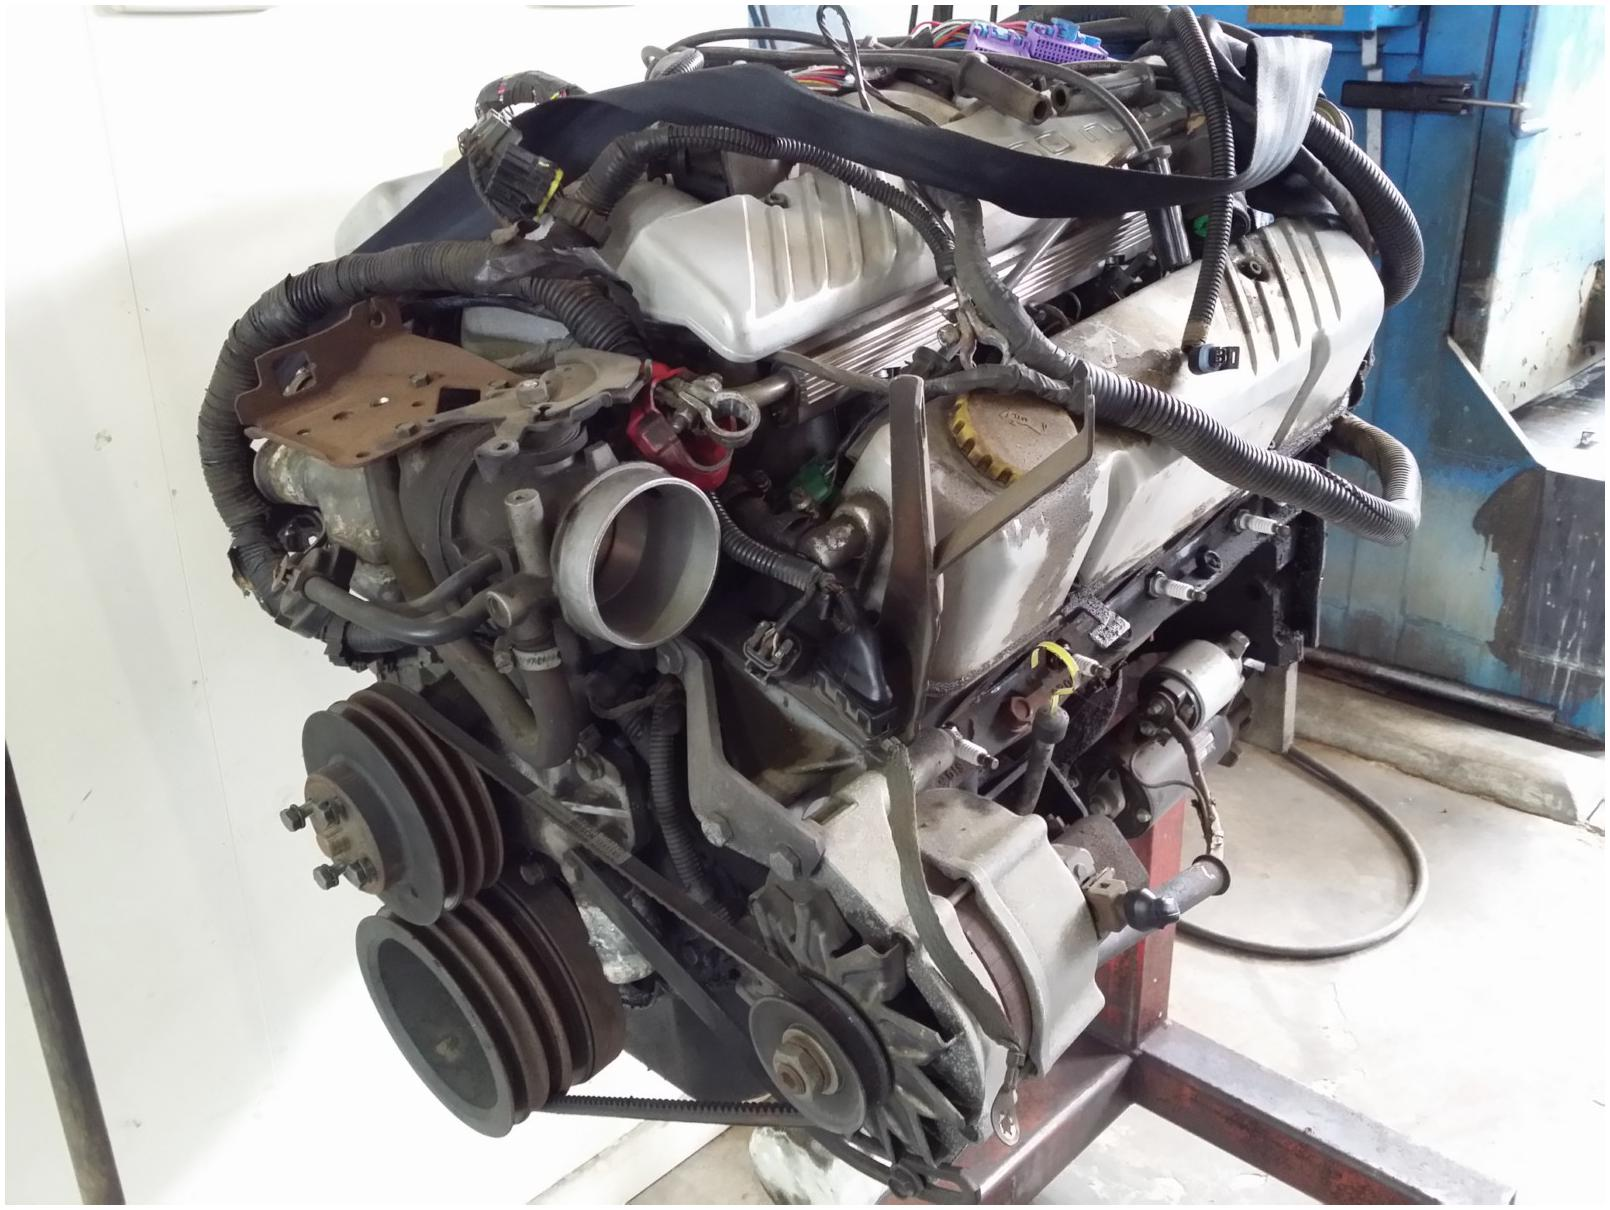 Holden V8 Project engine | COME Racing